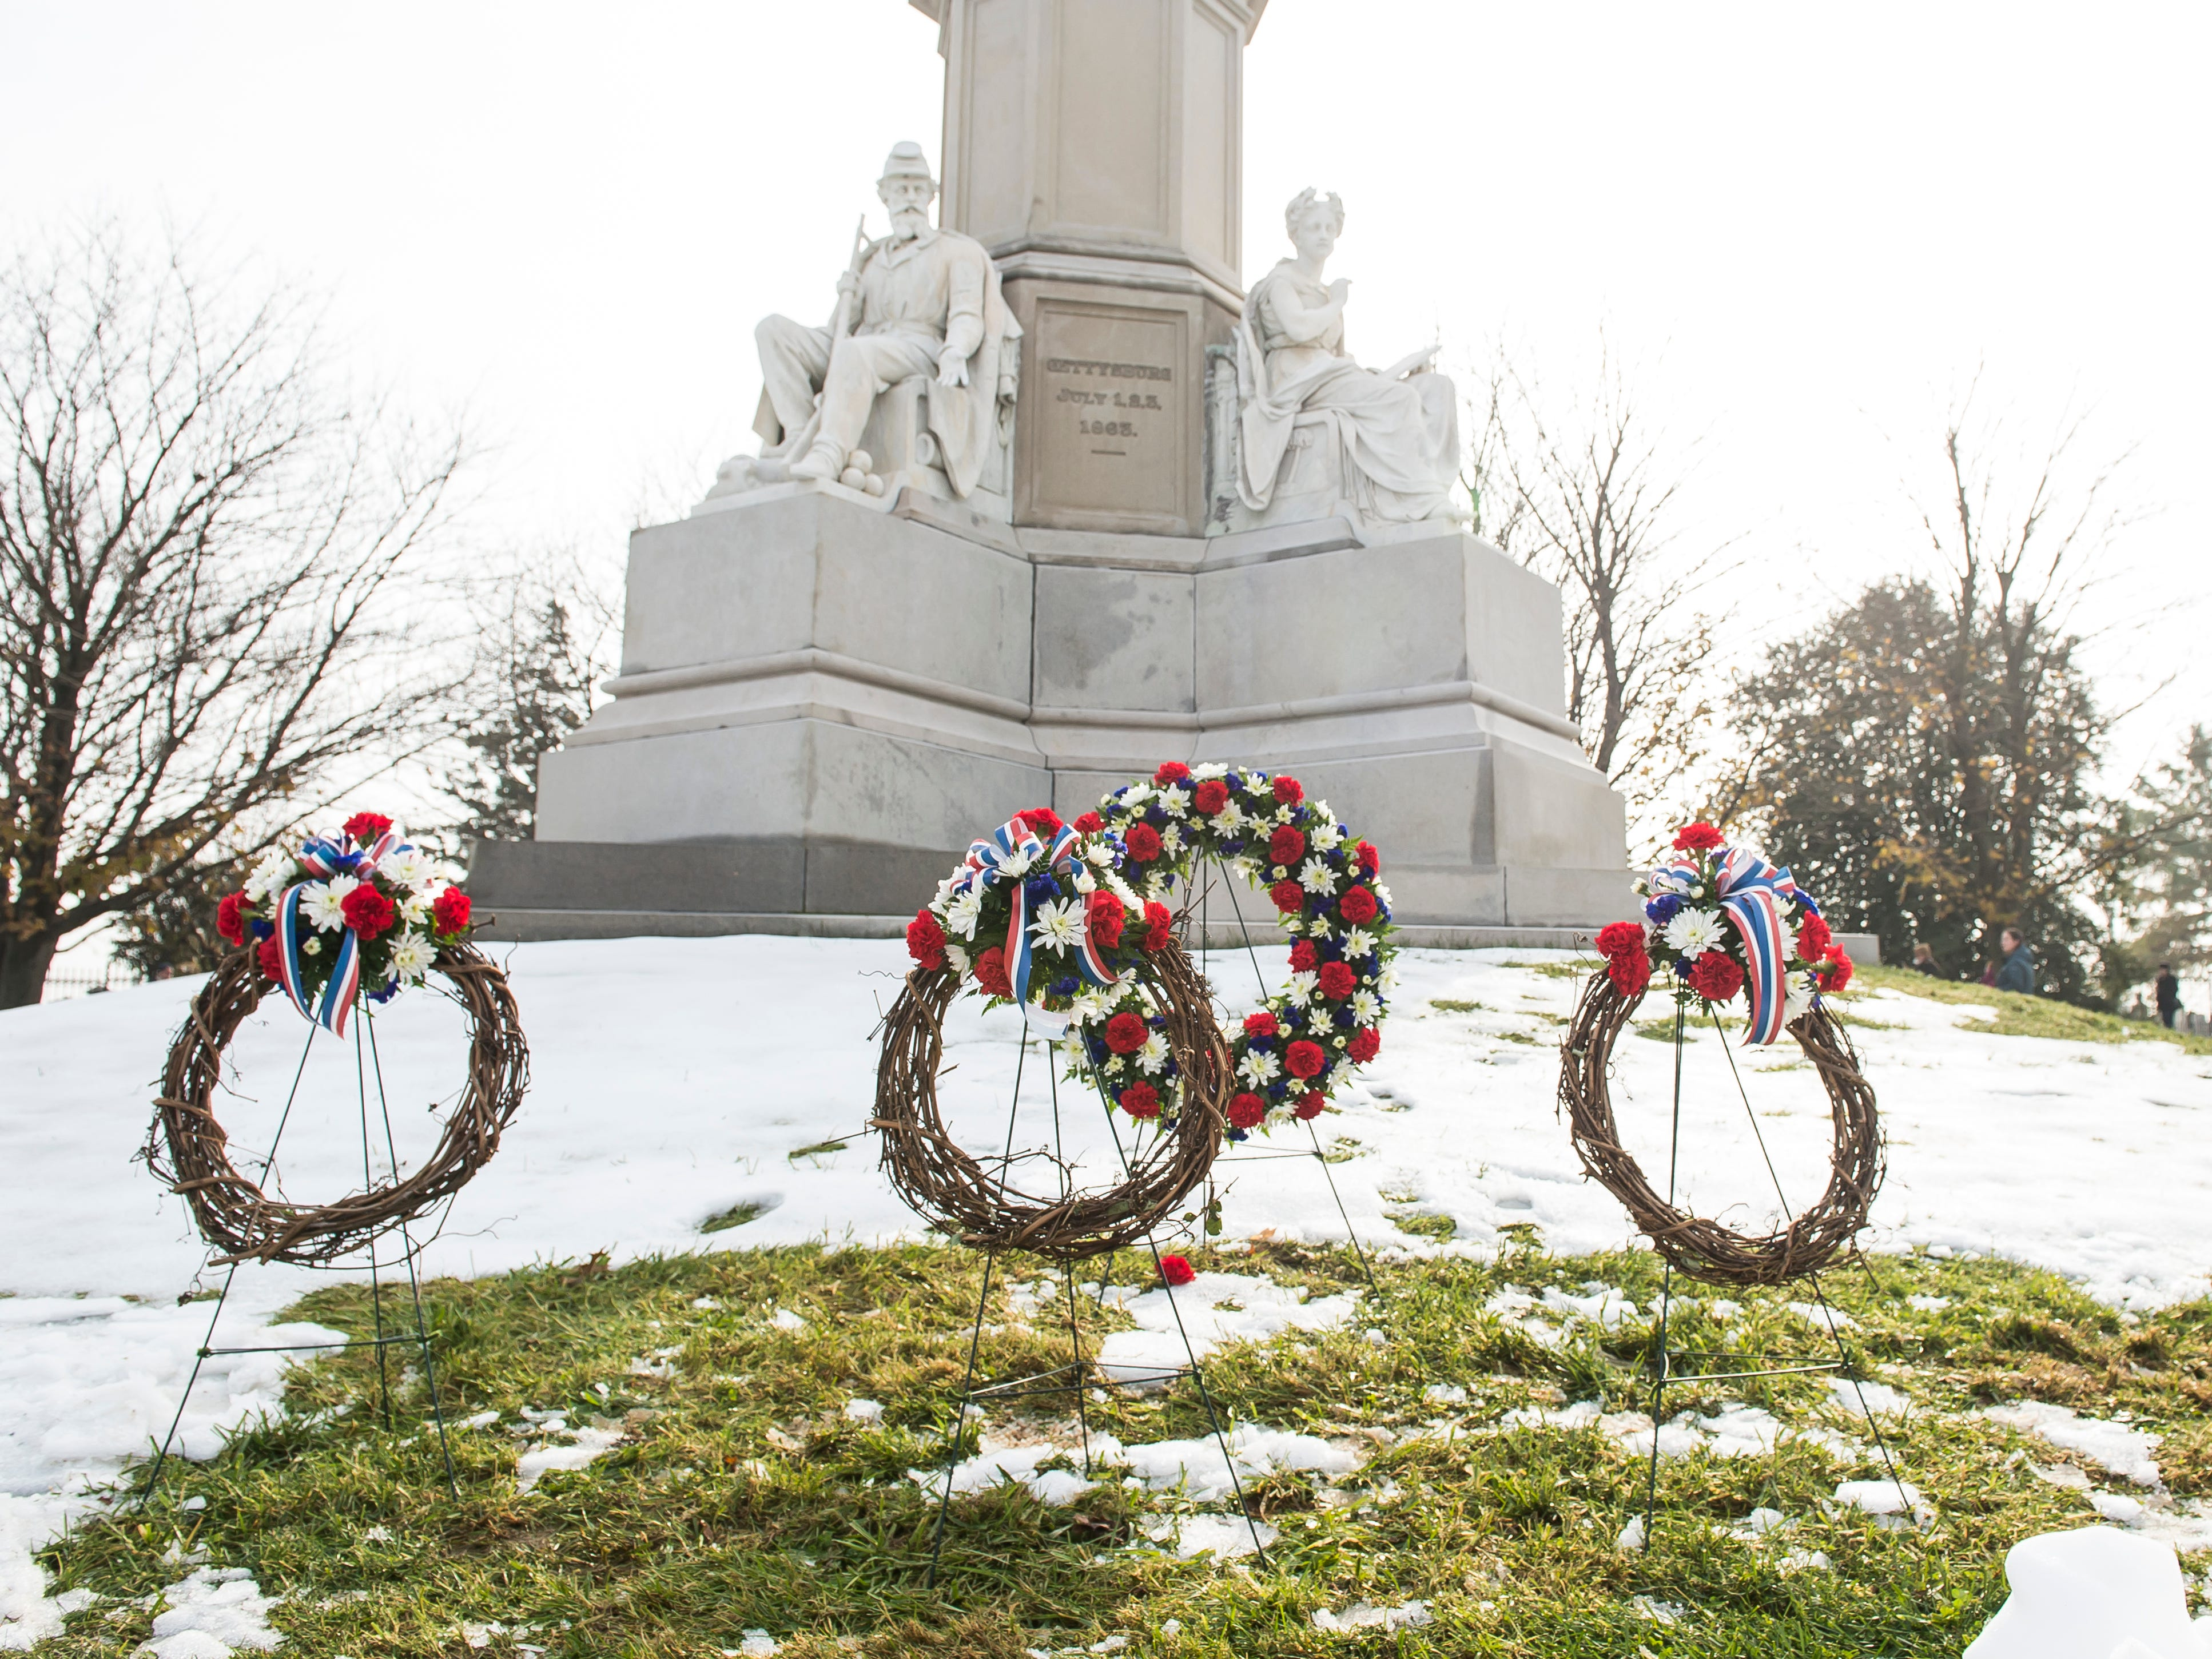 Four memorial wreaths sit in front of Soldiers' National Monument in Gettysburg National Cemetery on Dedication Day November, 19, 2018.